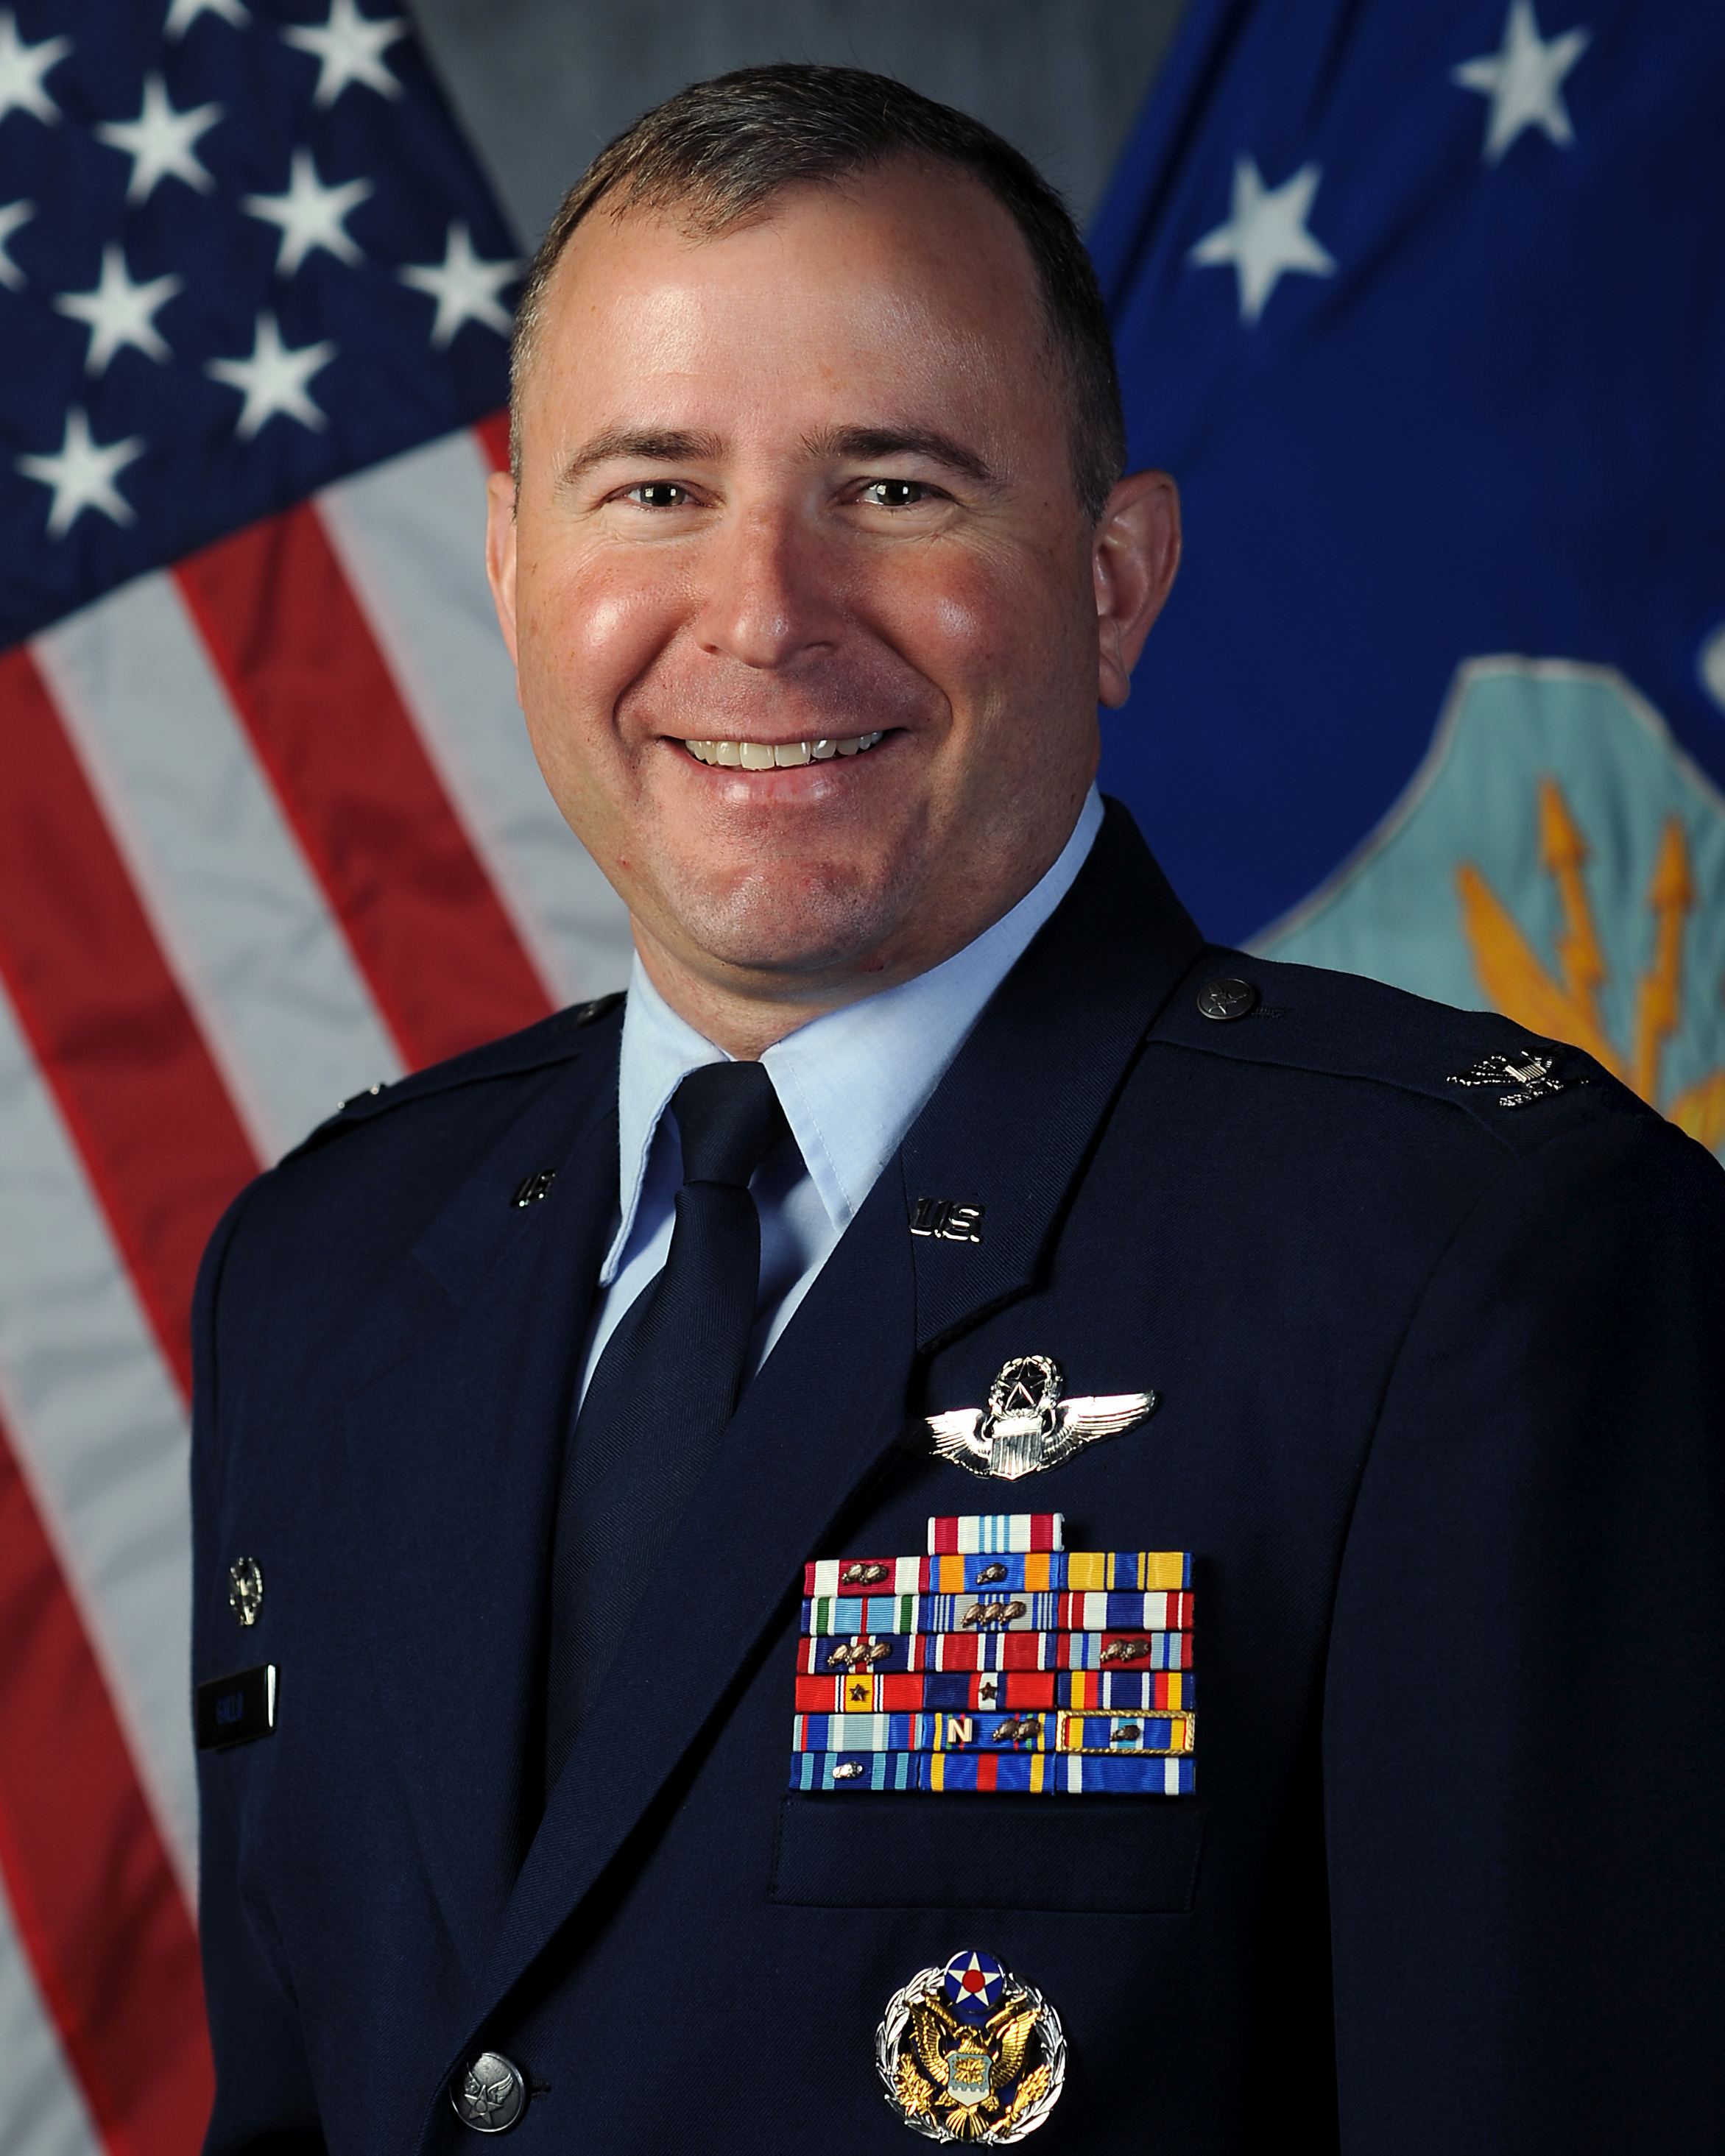 509th Operations Group Commander, Colonel Brian D. Gallo